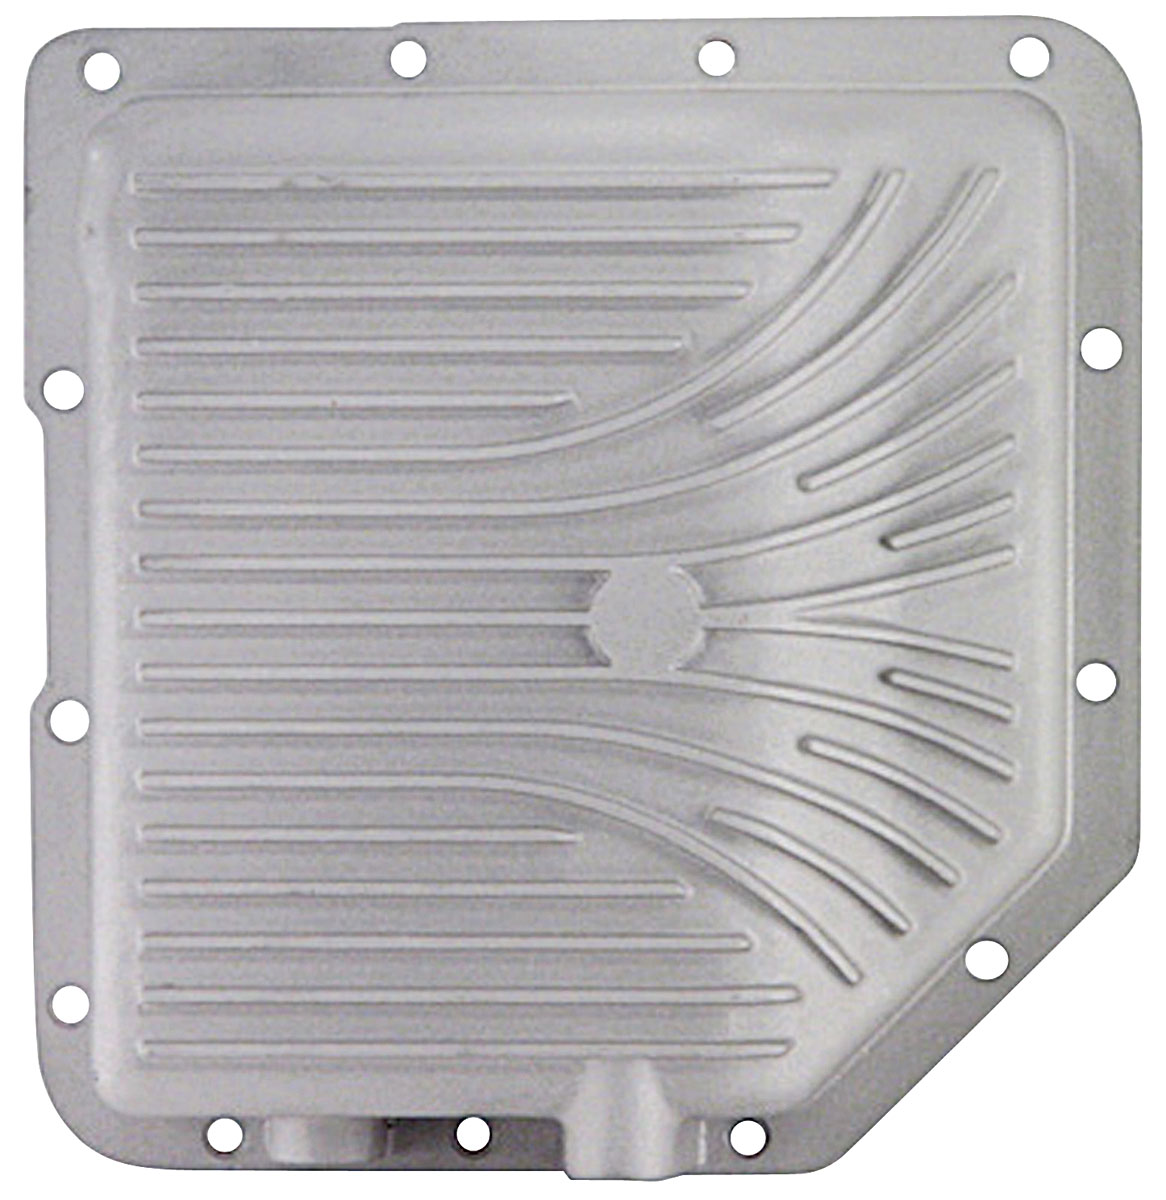 Transmission Pan, GM TH350, Deep